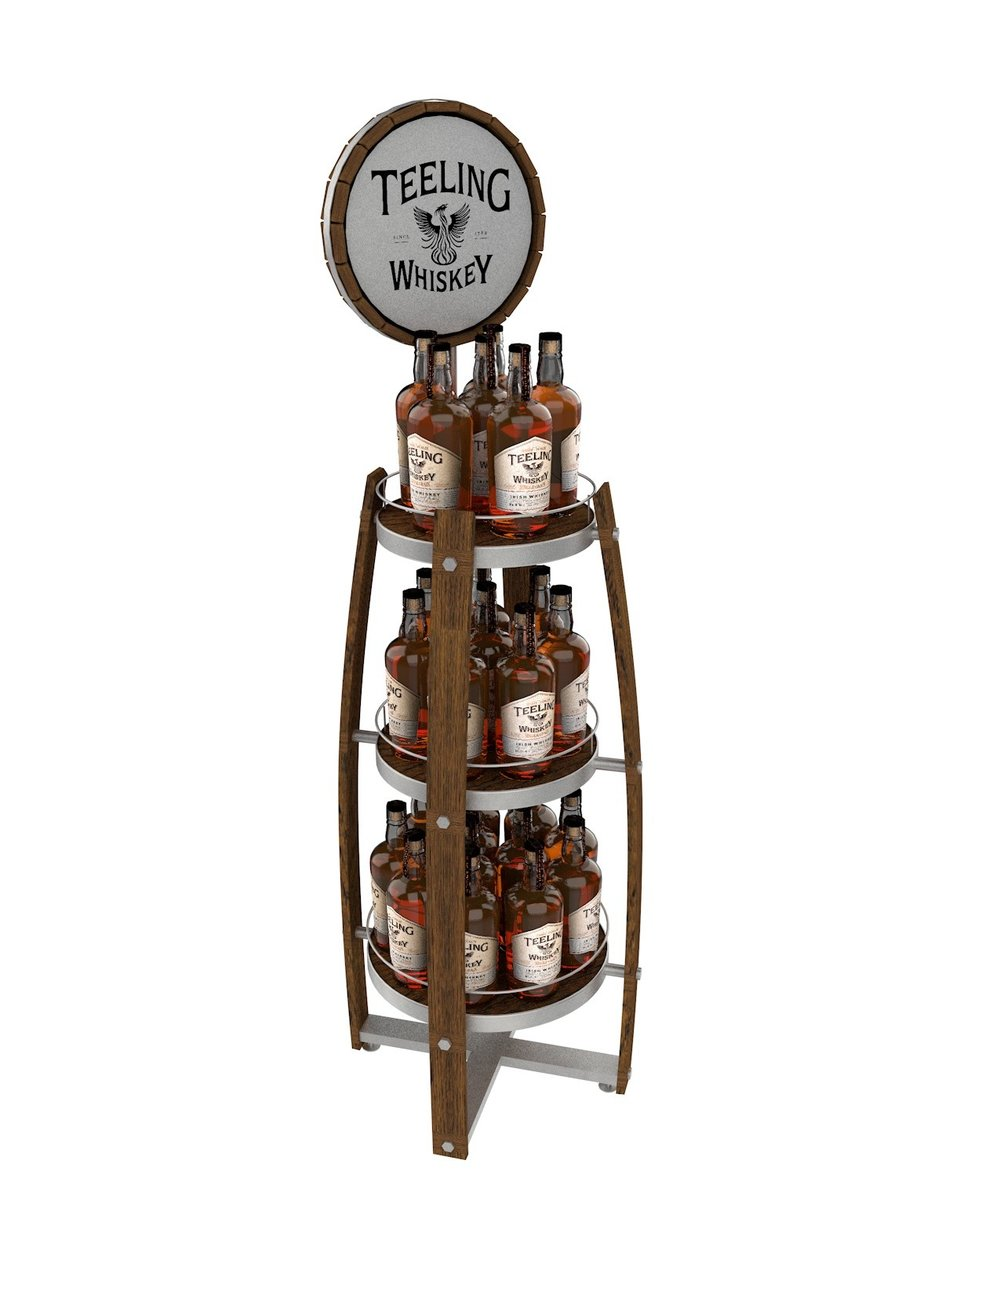 Teeling Whiskey Floorstand r4on white.jpg